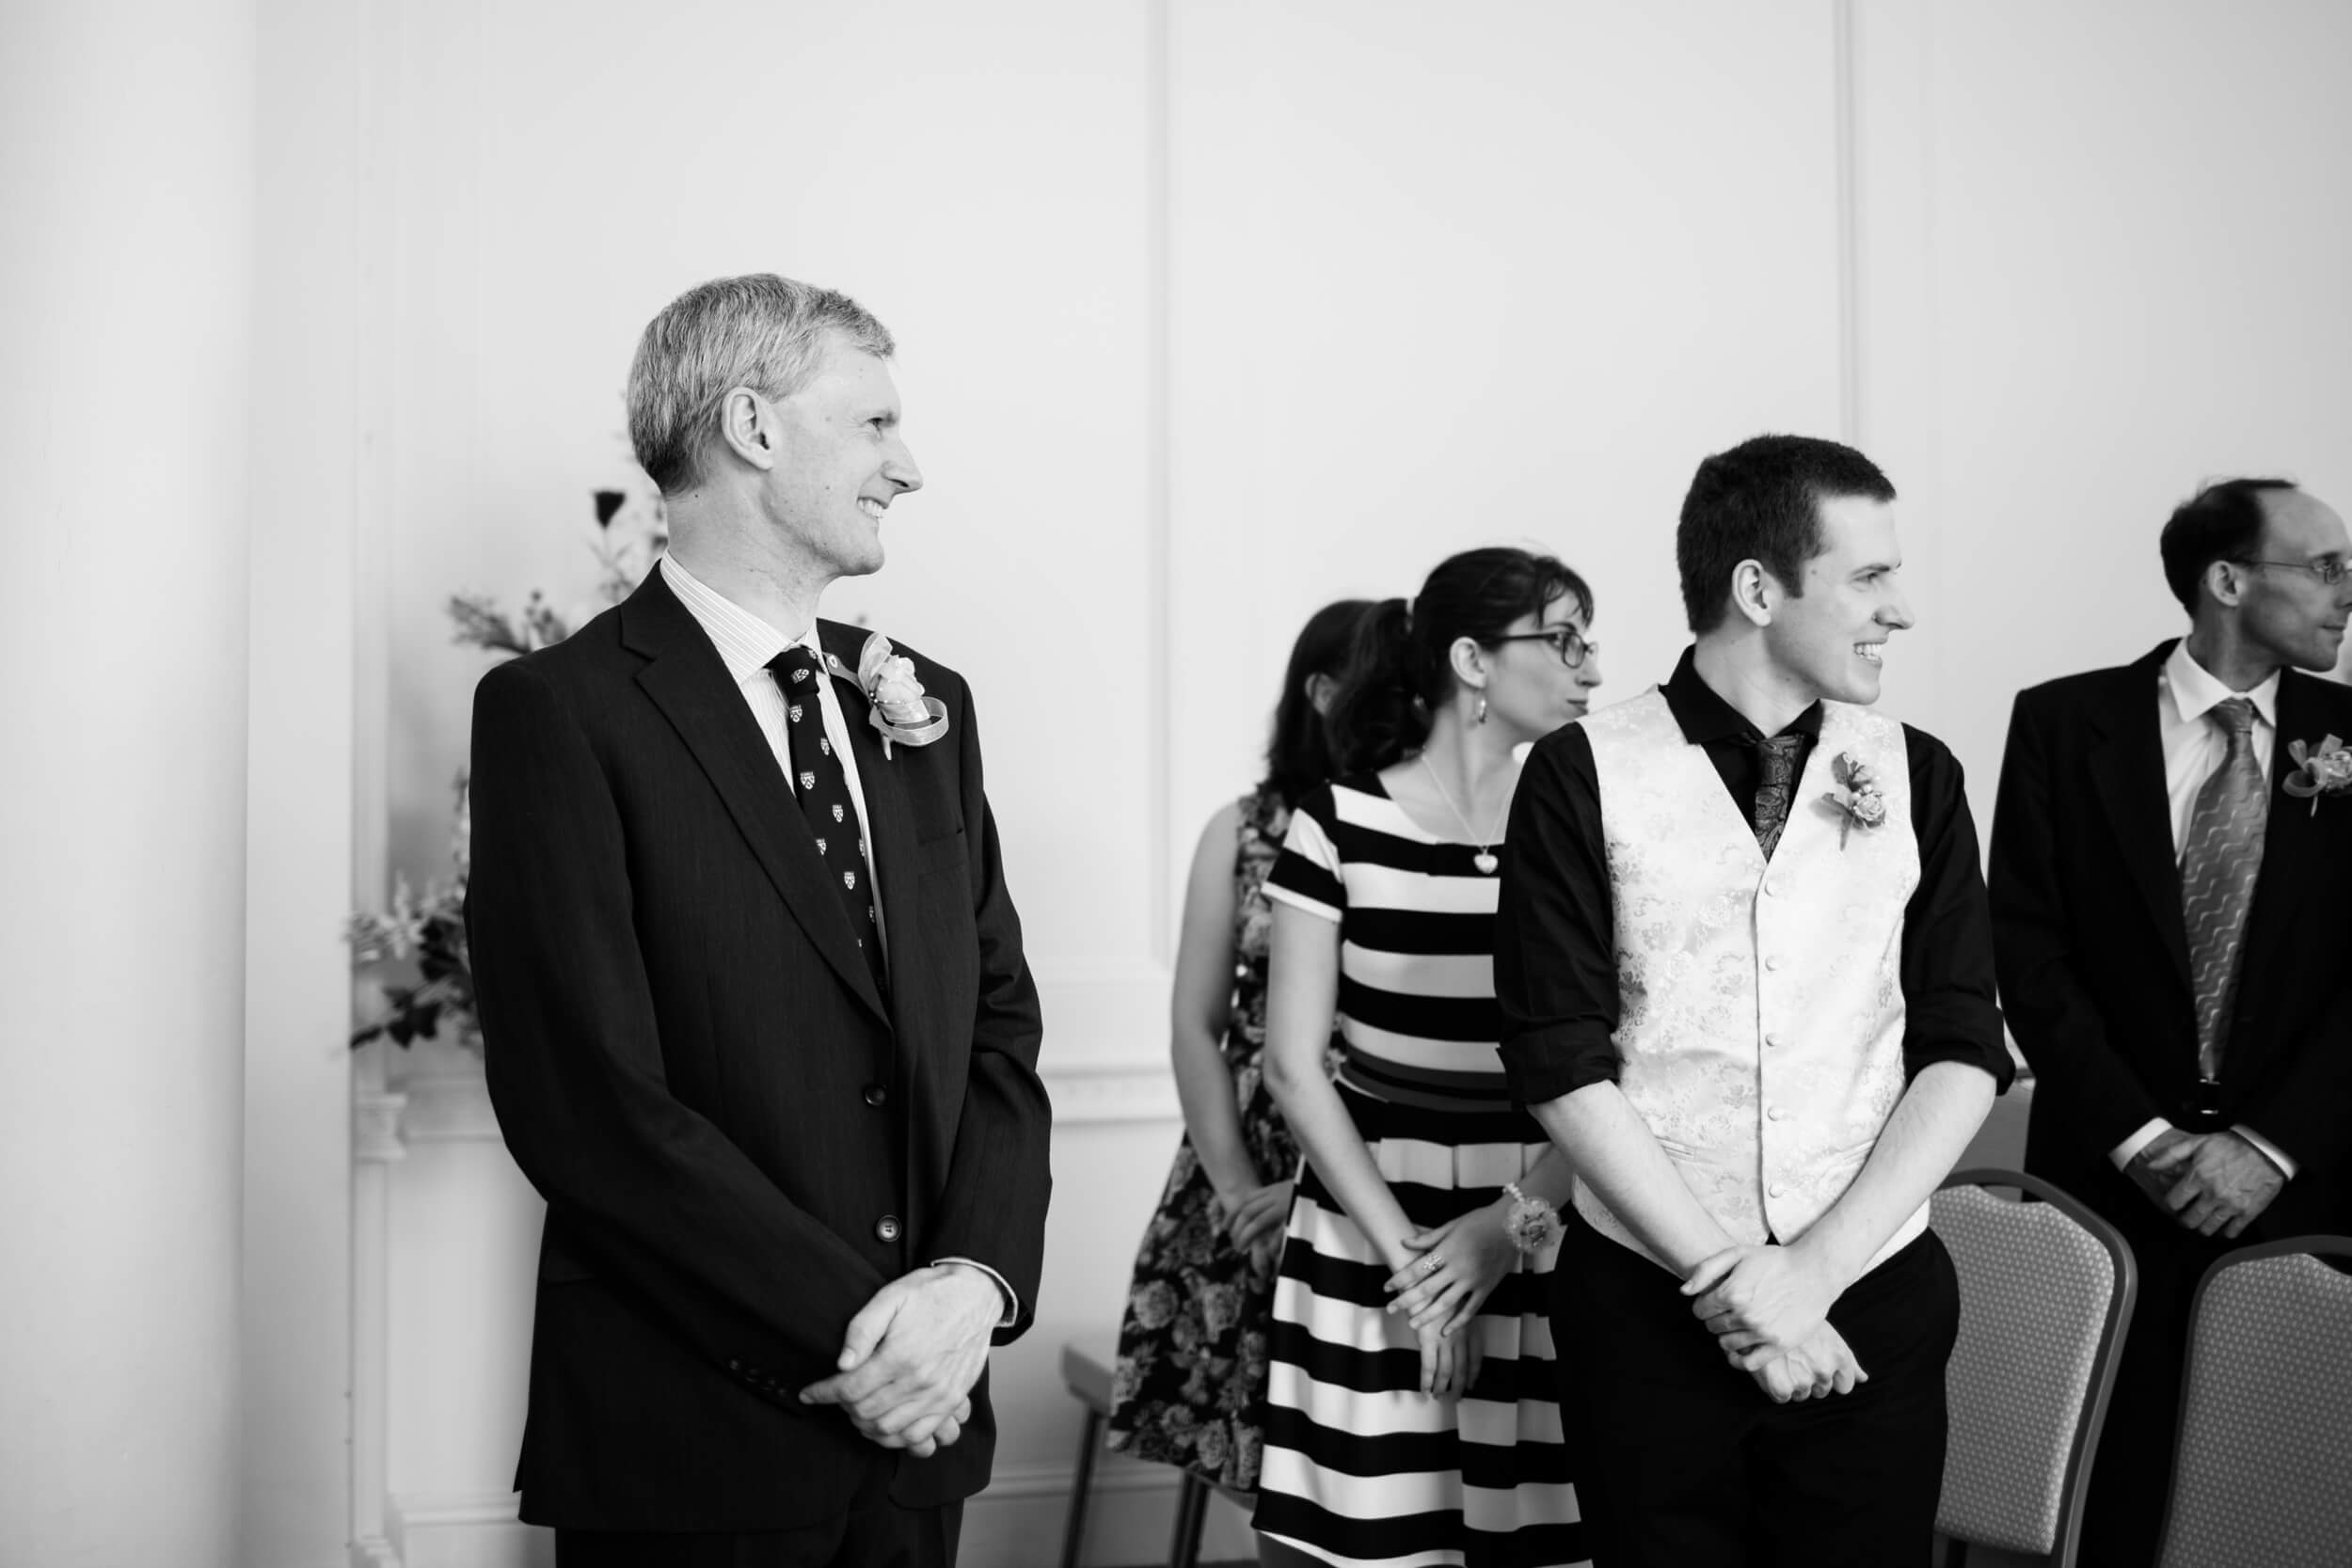 Wedding photography at Salisbury Registry office, waiting for the bride